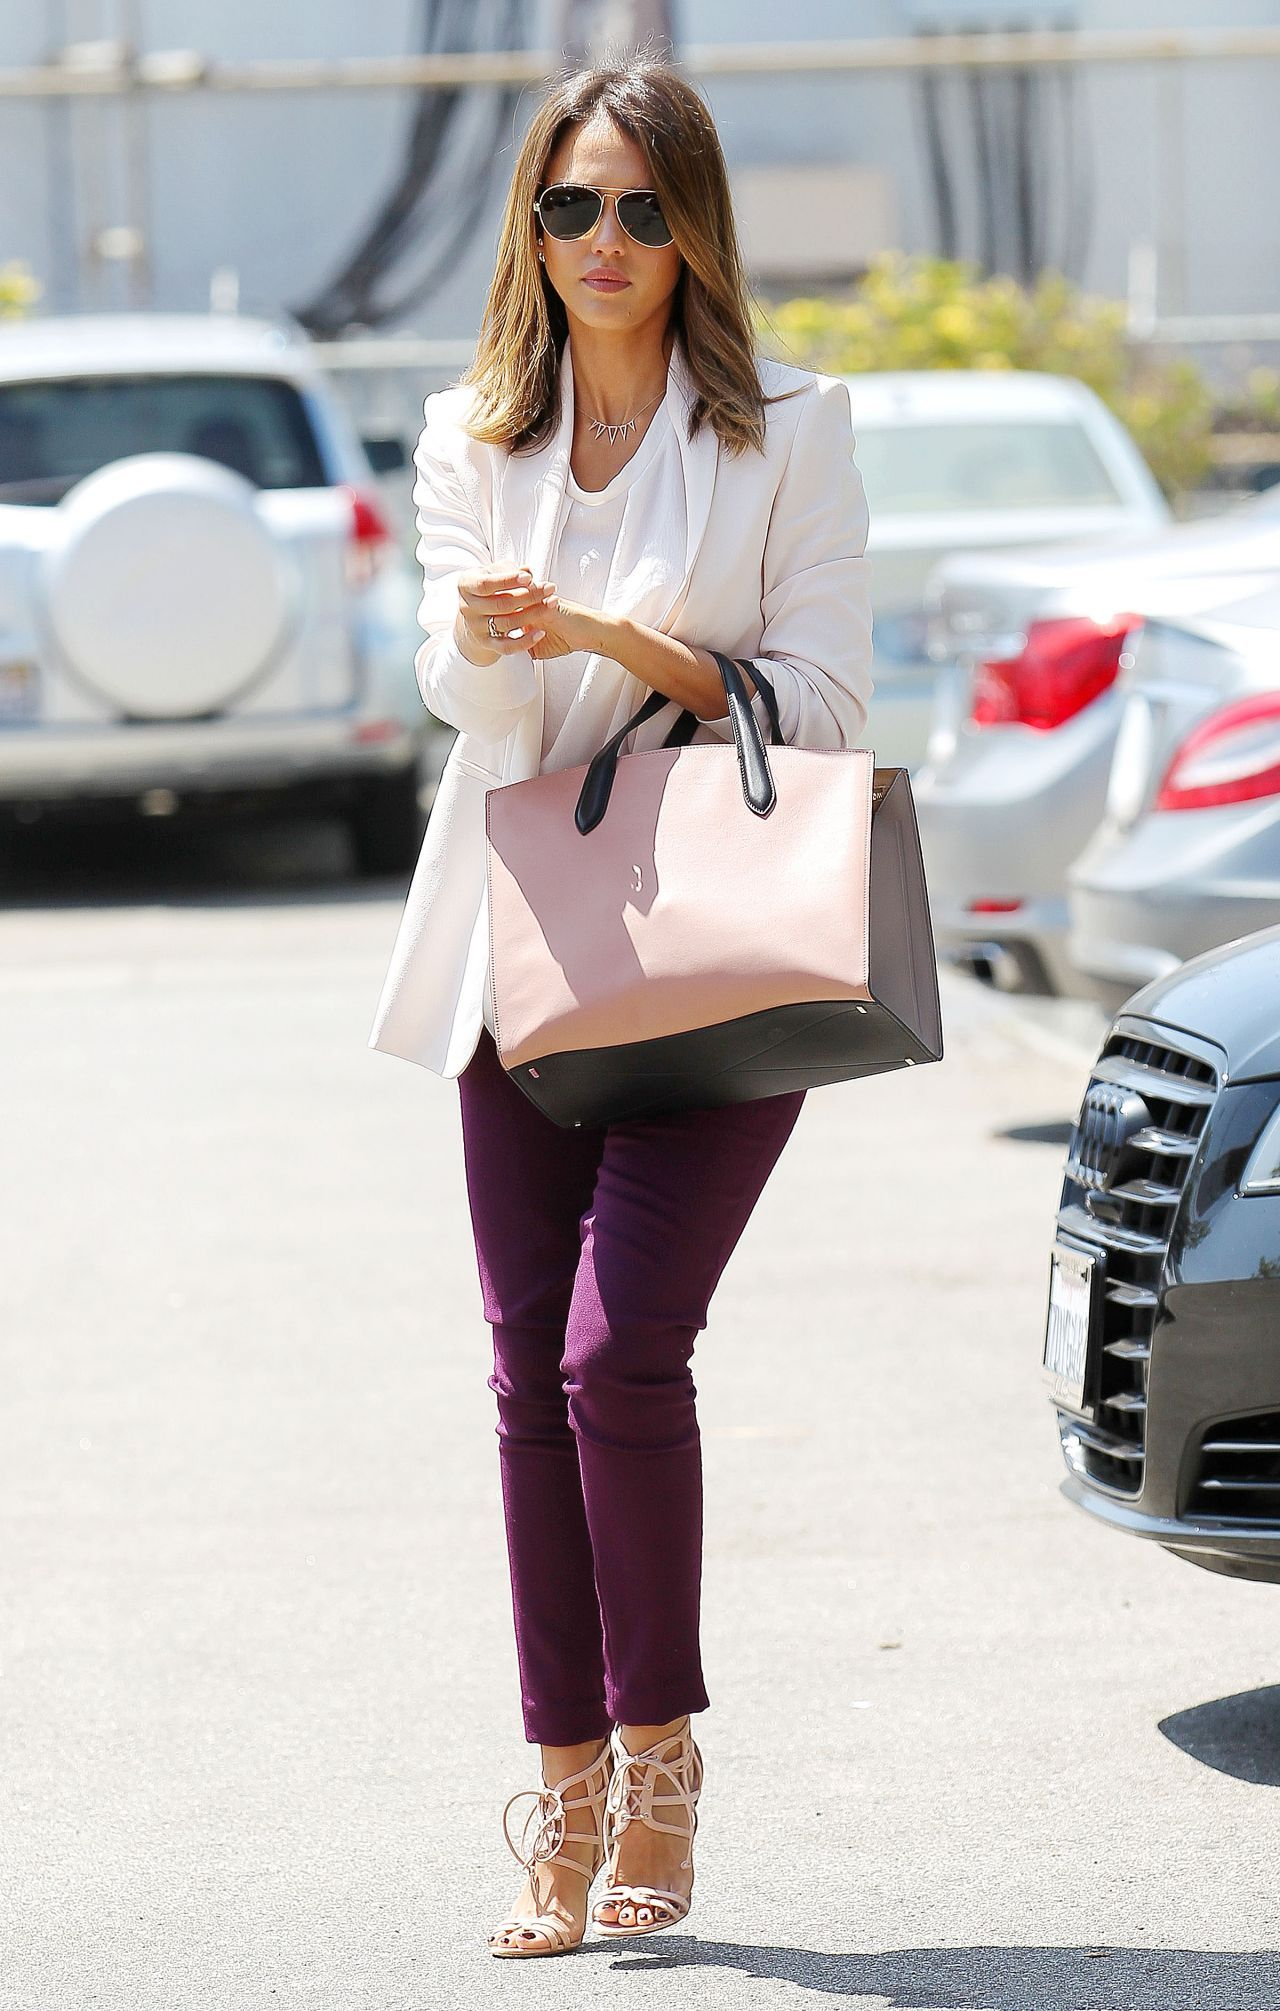 Jessica Alba Style And Outfits Style Advisor Work Outfits Pinterest Jessica Alba Style